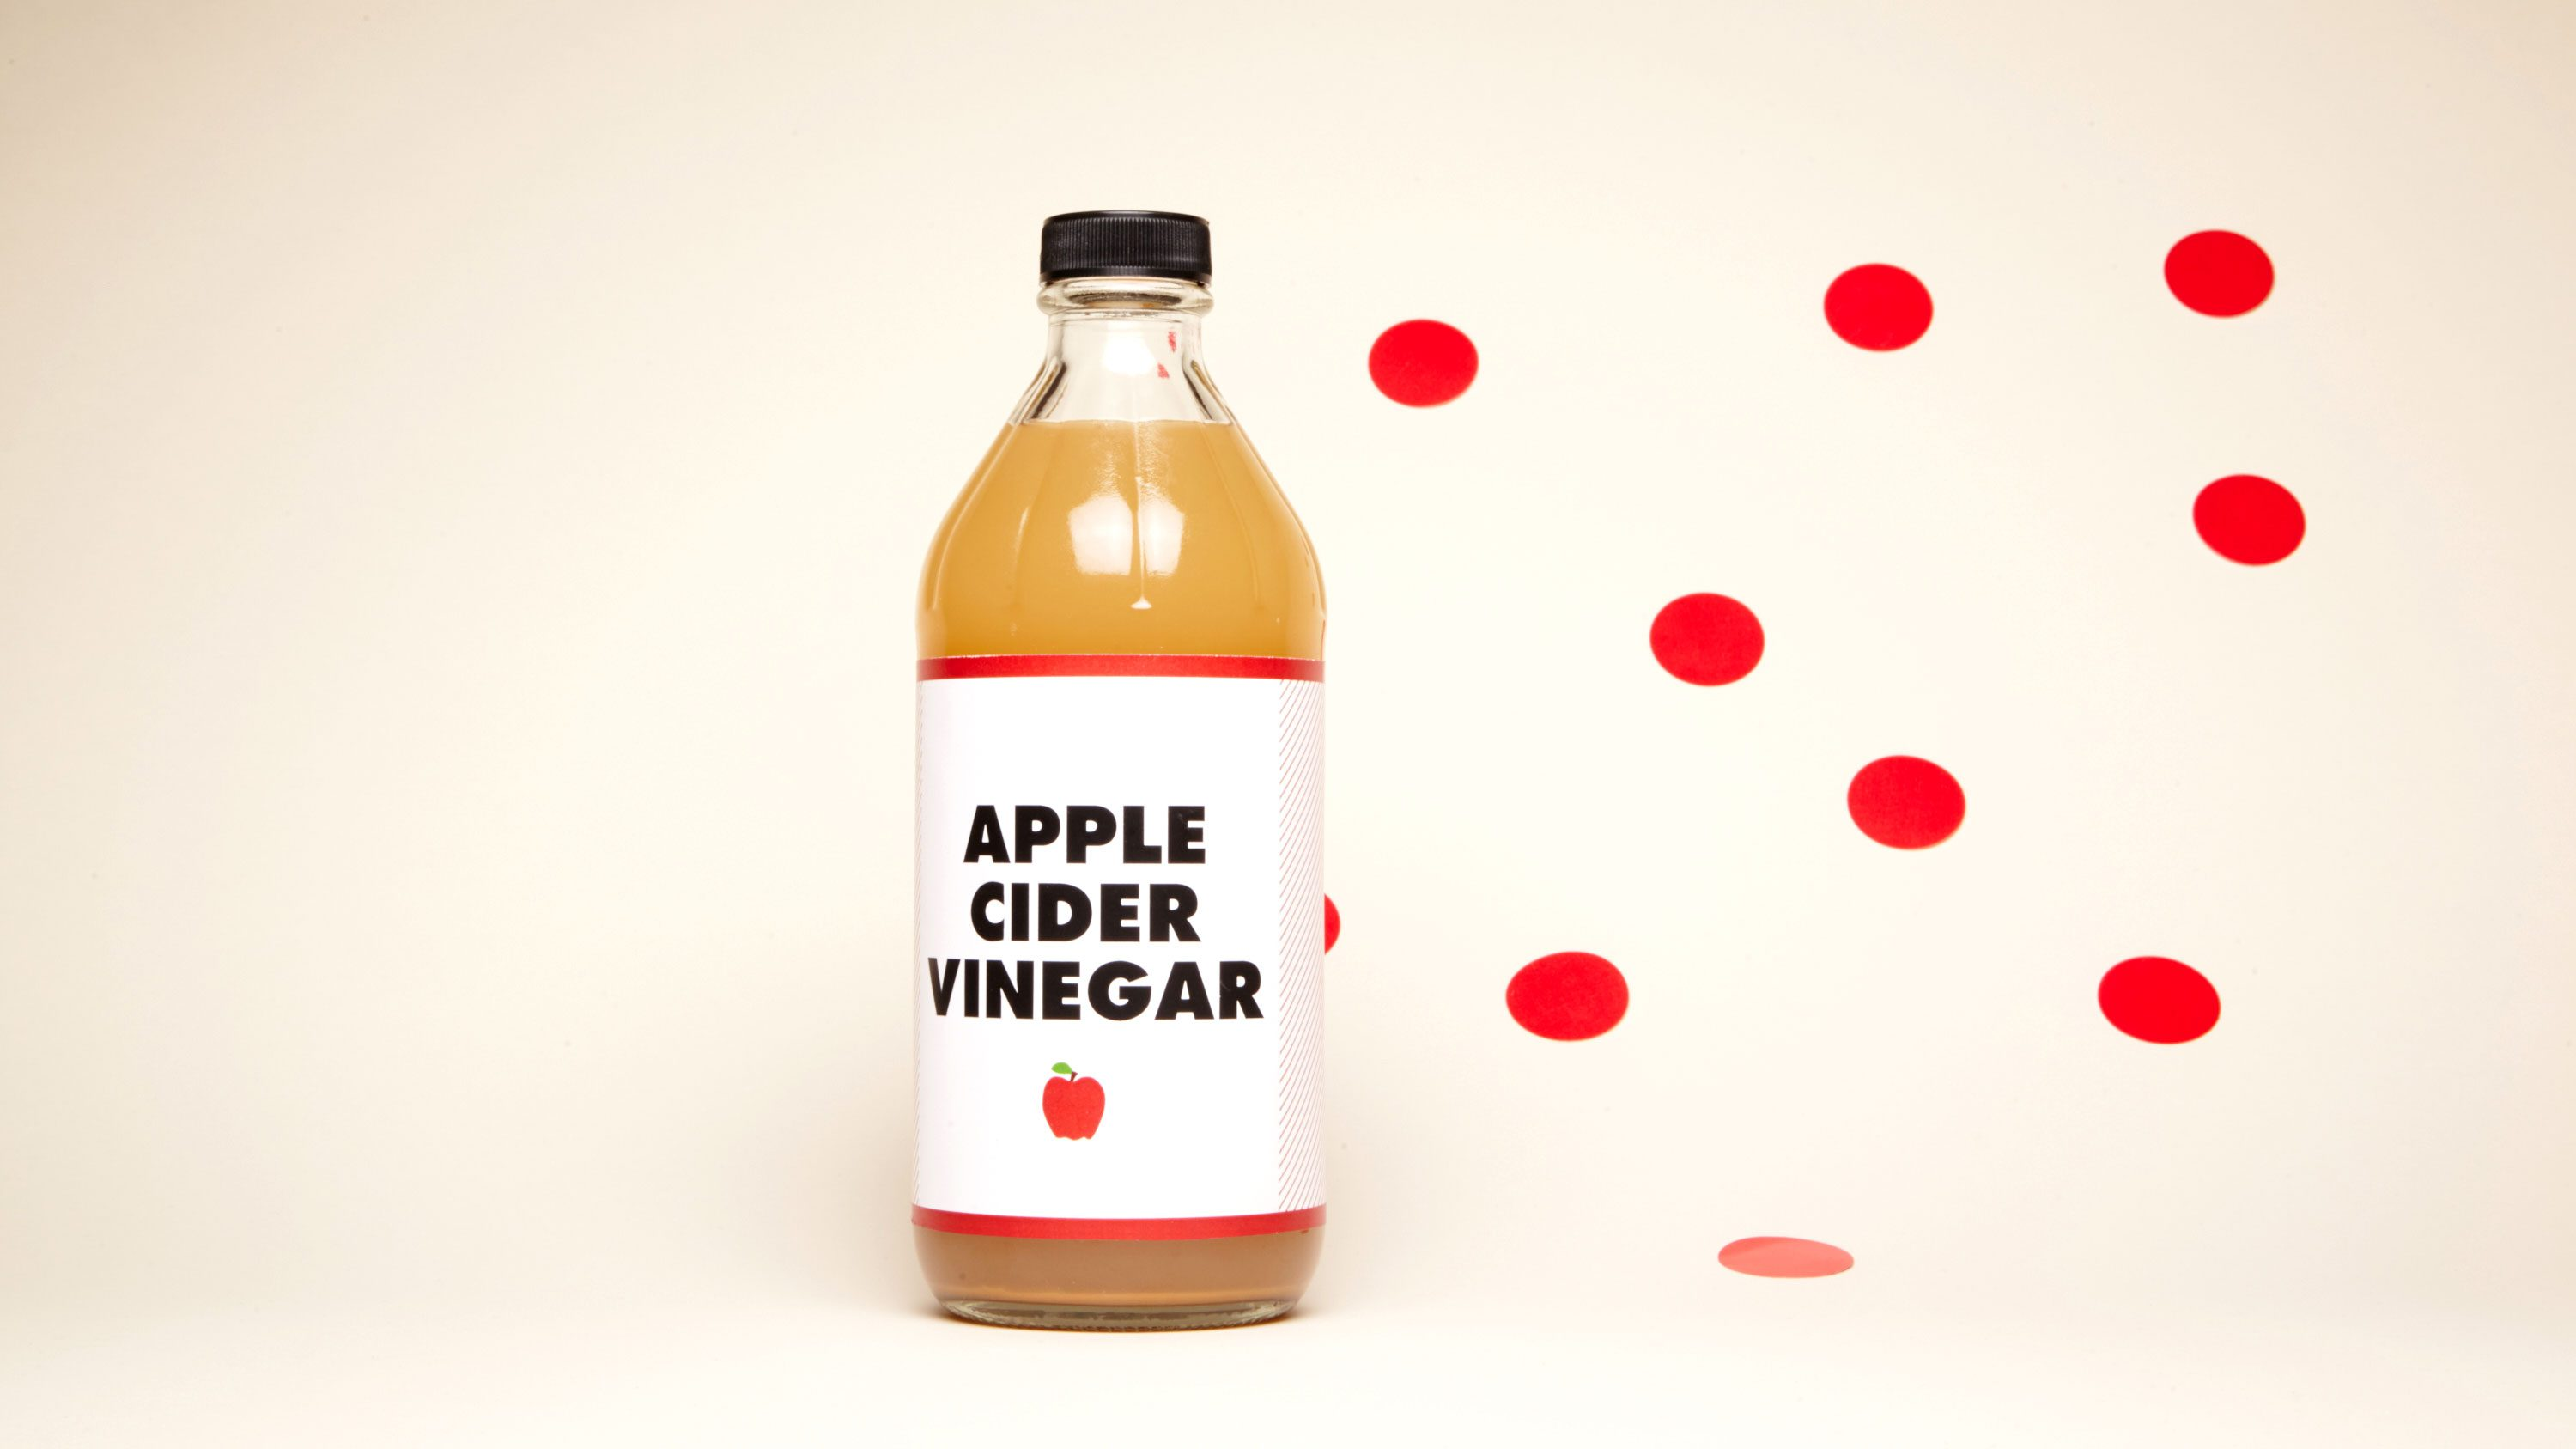 15 Ways Apple Cider Vinegar Benefits Your Health | Reader